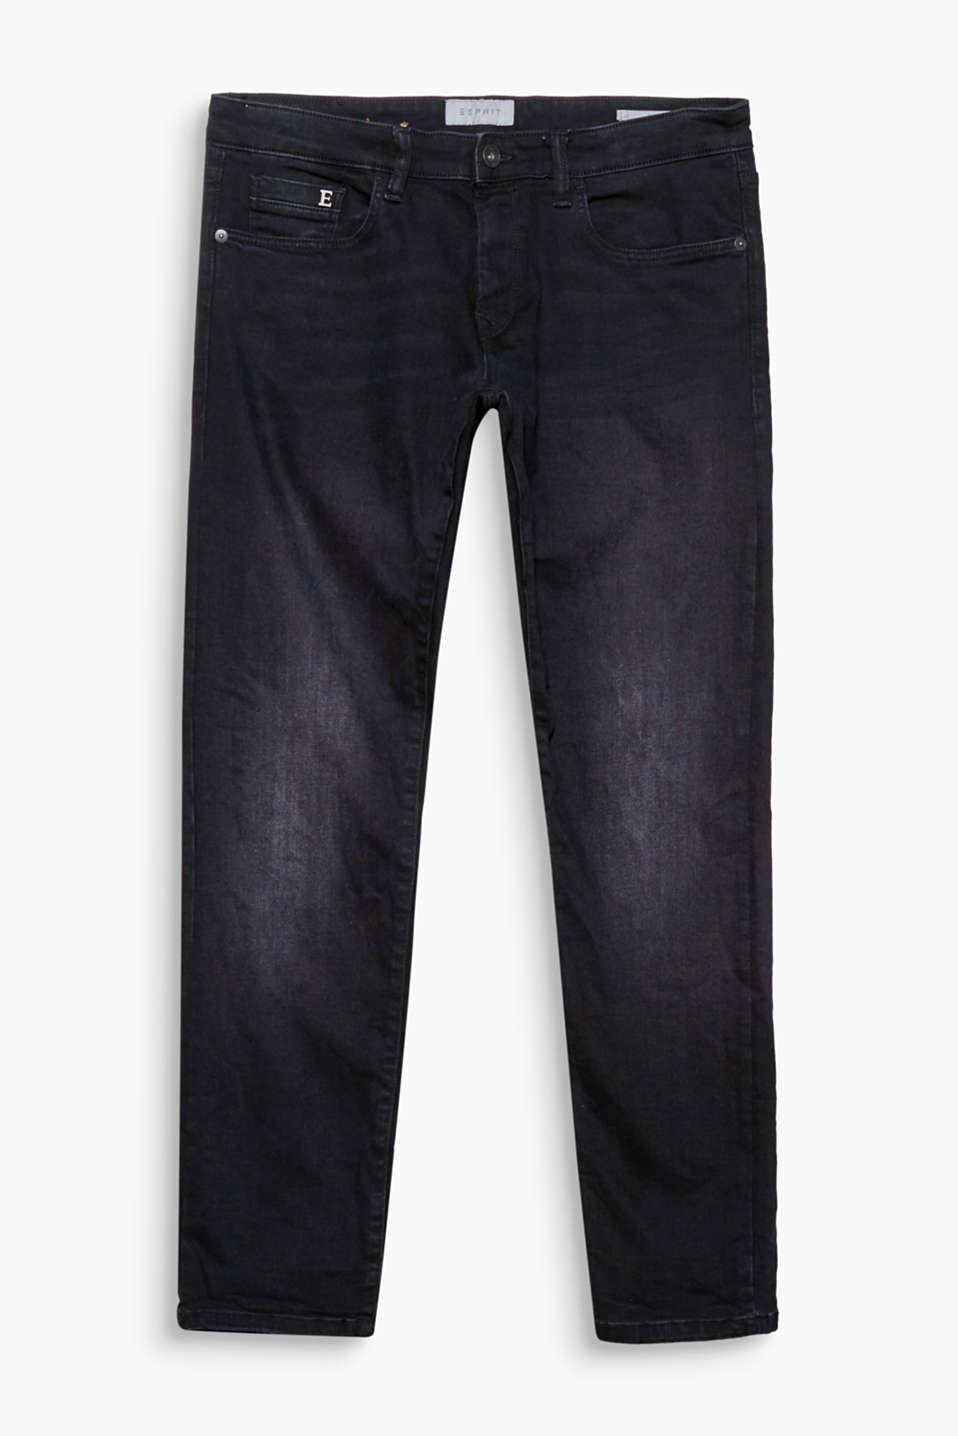 These have the makings of an everyday favourite: black stretch jeans in a five-pocket style in a slim fit with a metal E